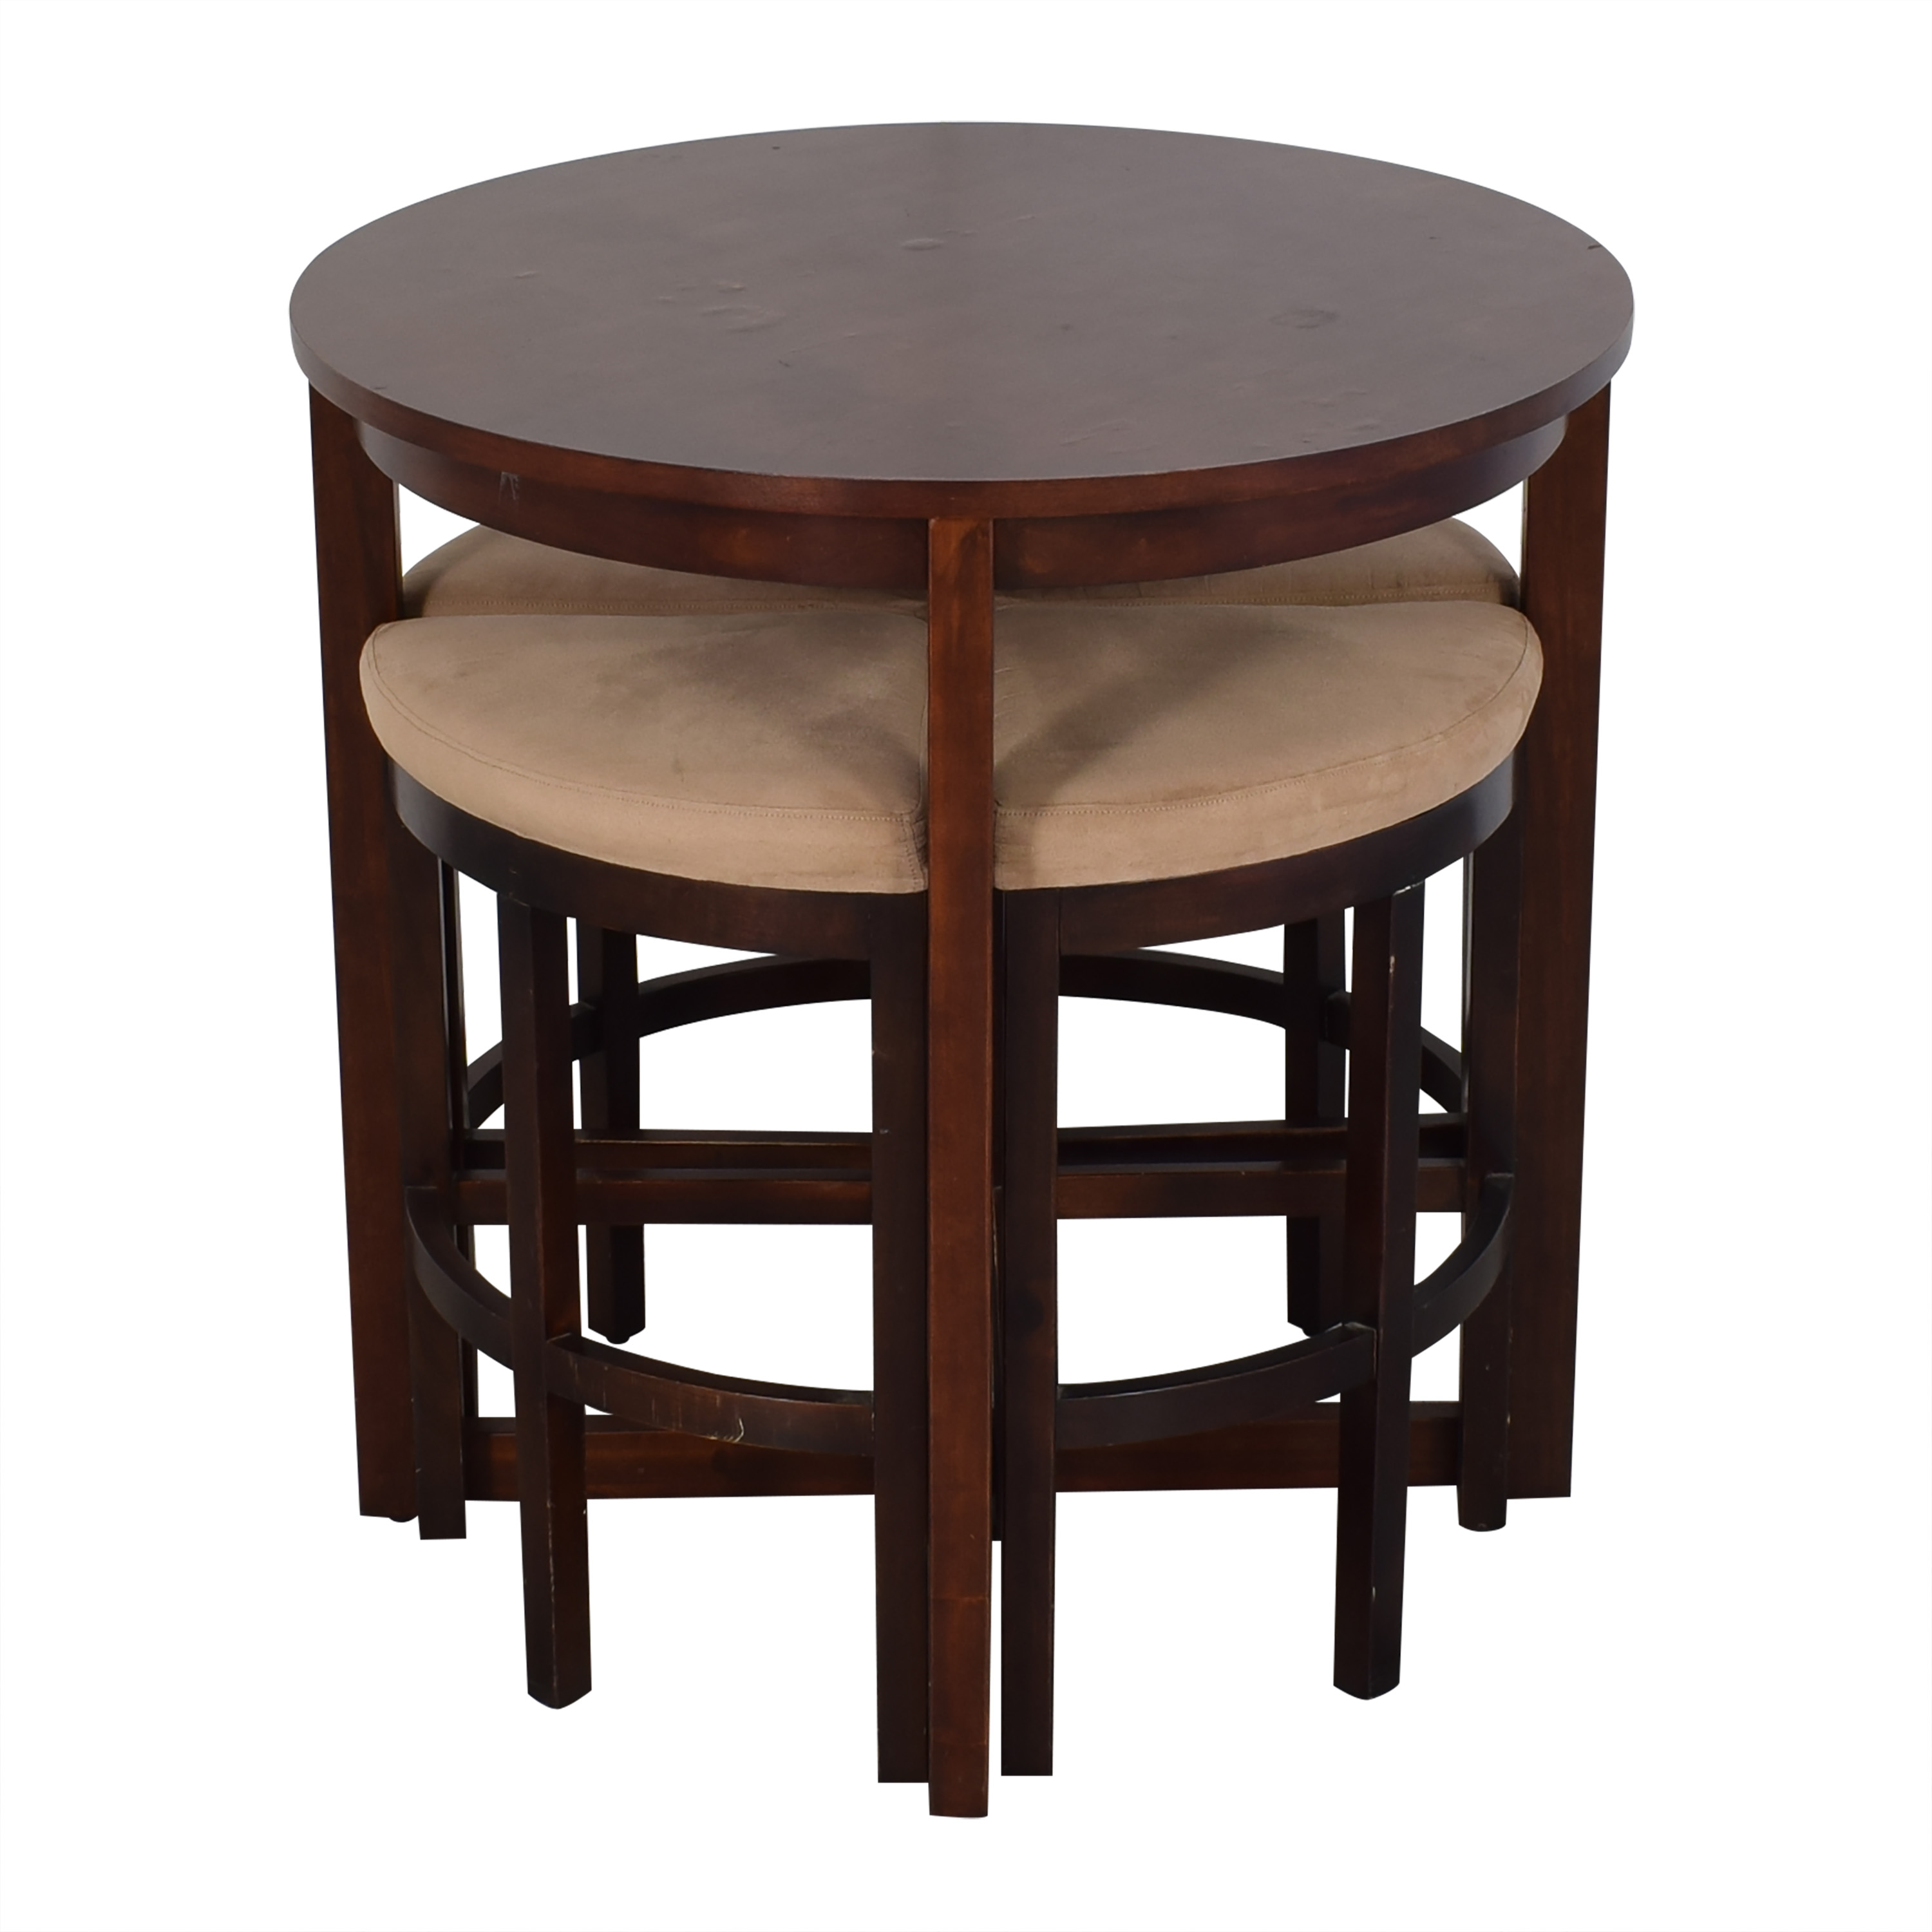 shop Raymour & Flanigan Round Table and Stools Raymour & Flanigan Tables